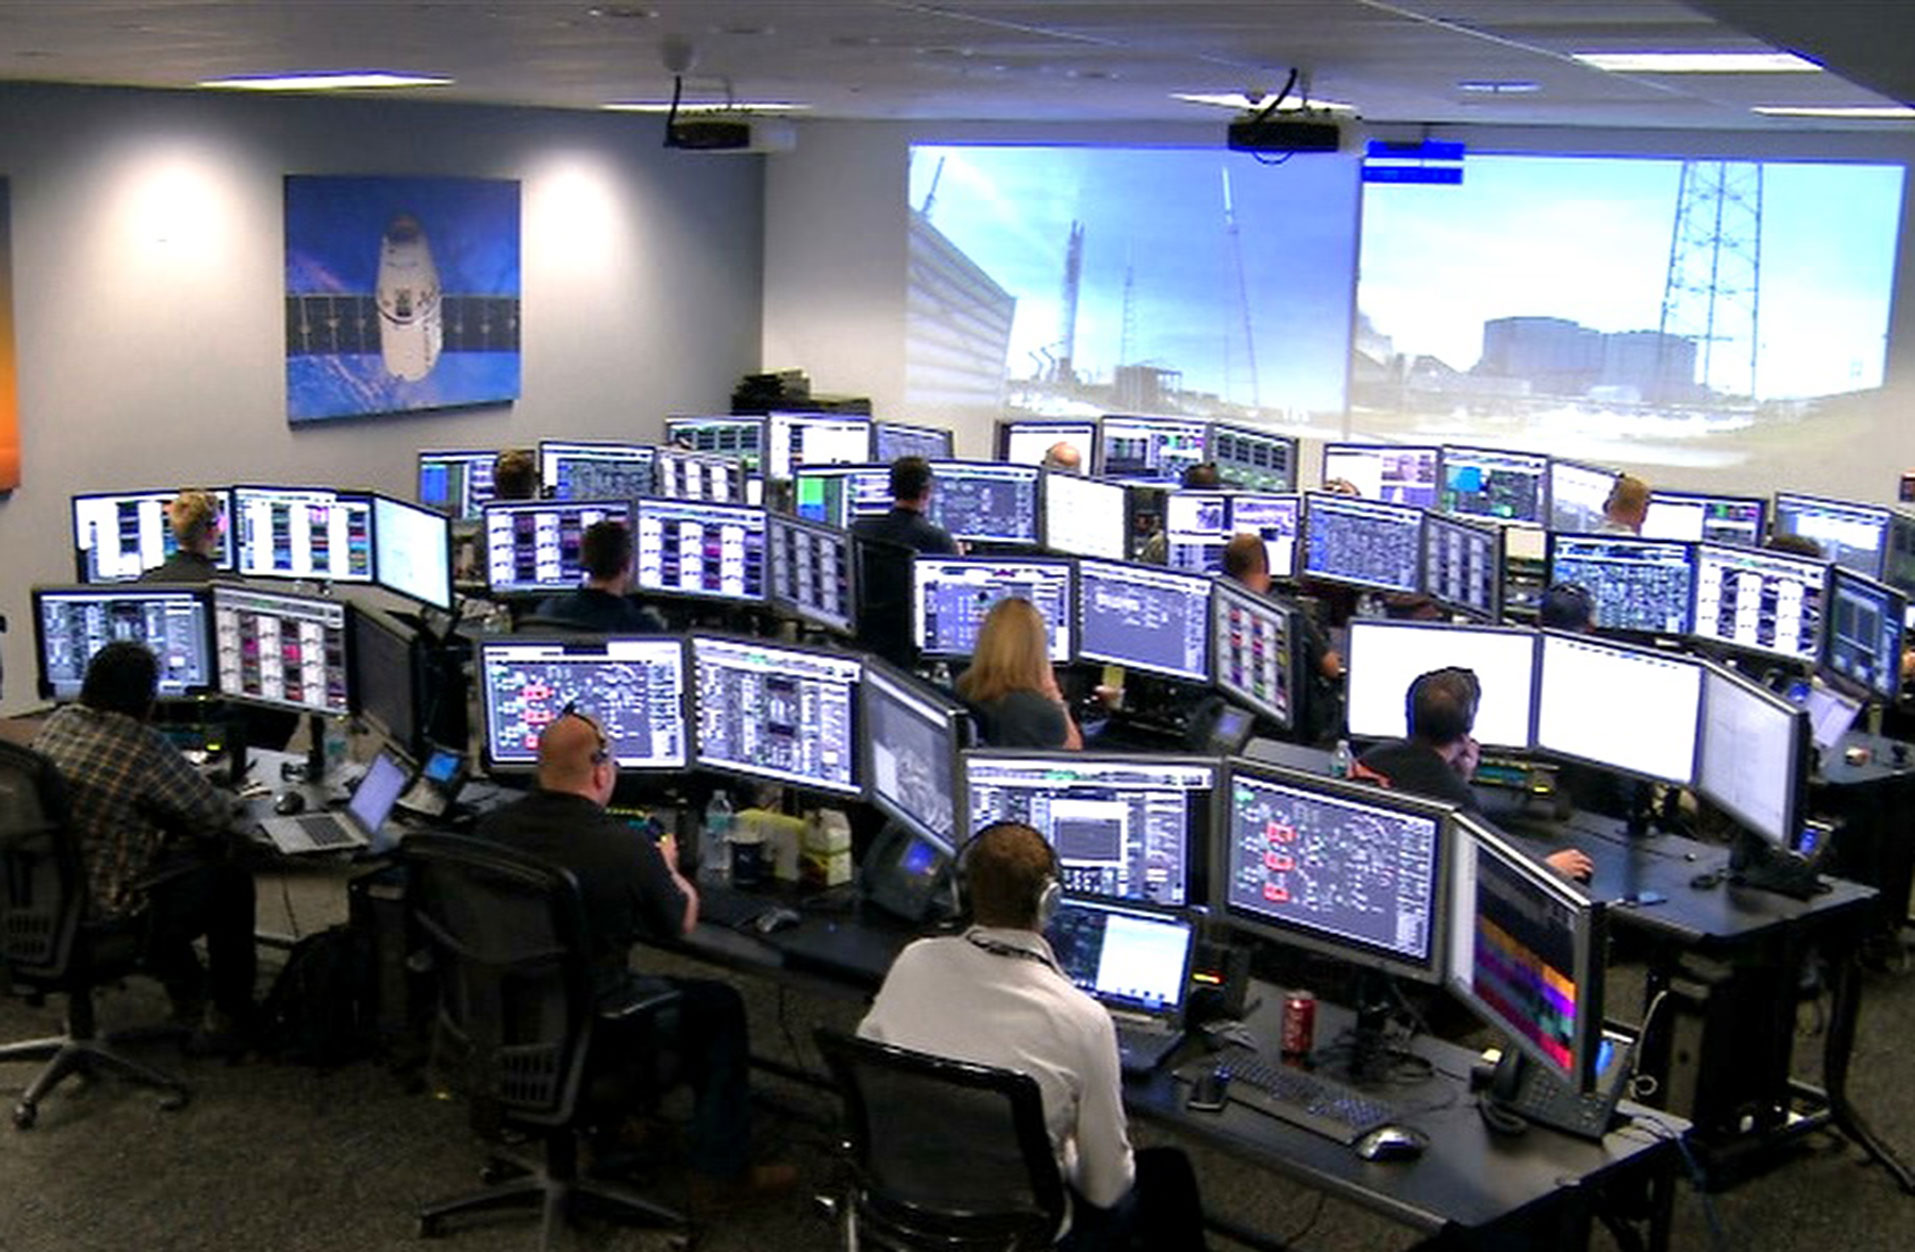 spacex launch control center - photo #1